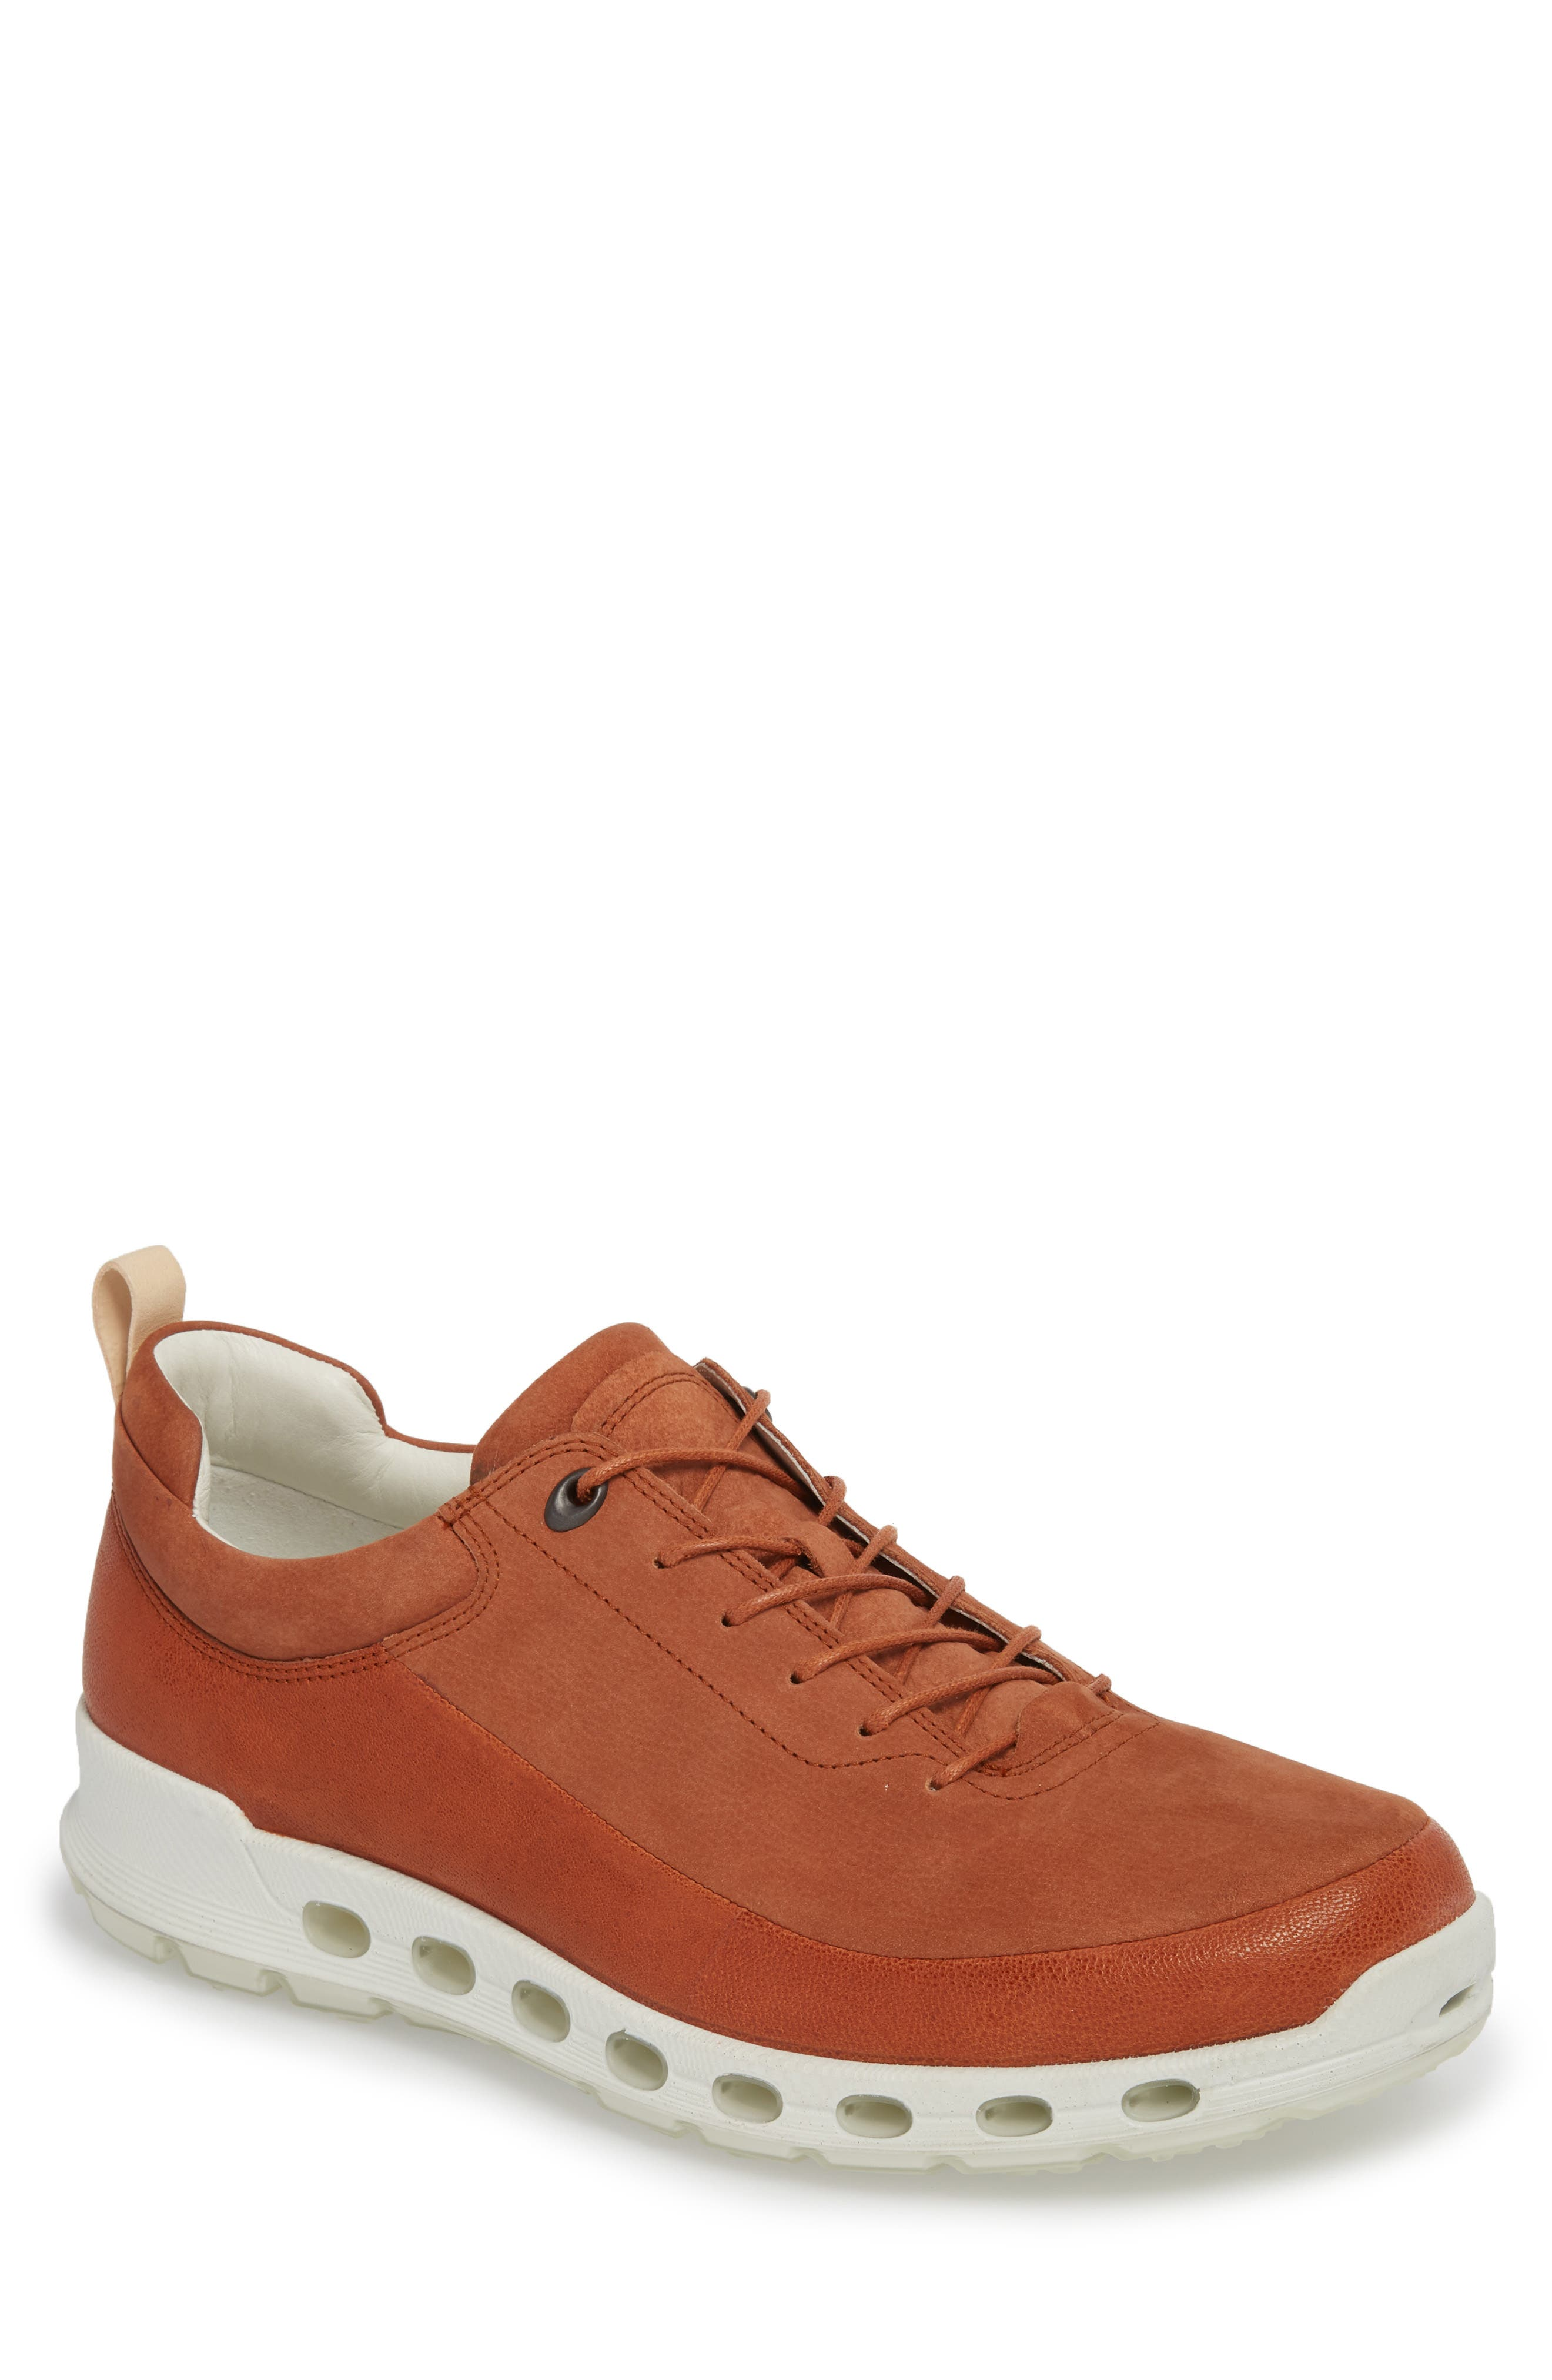 Cool 2.0 Gore-Tex<sup>®</sup> Sneaker,                             Main thumbnail 1, color,                             Brandy Leather